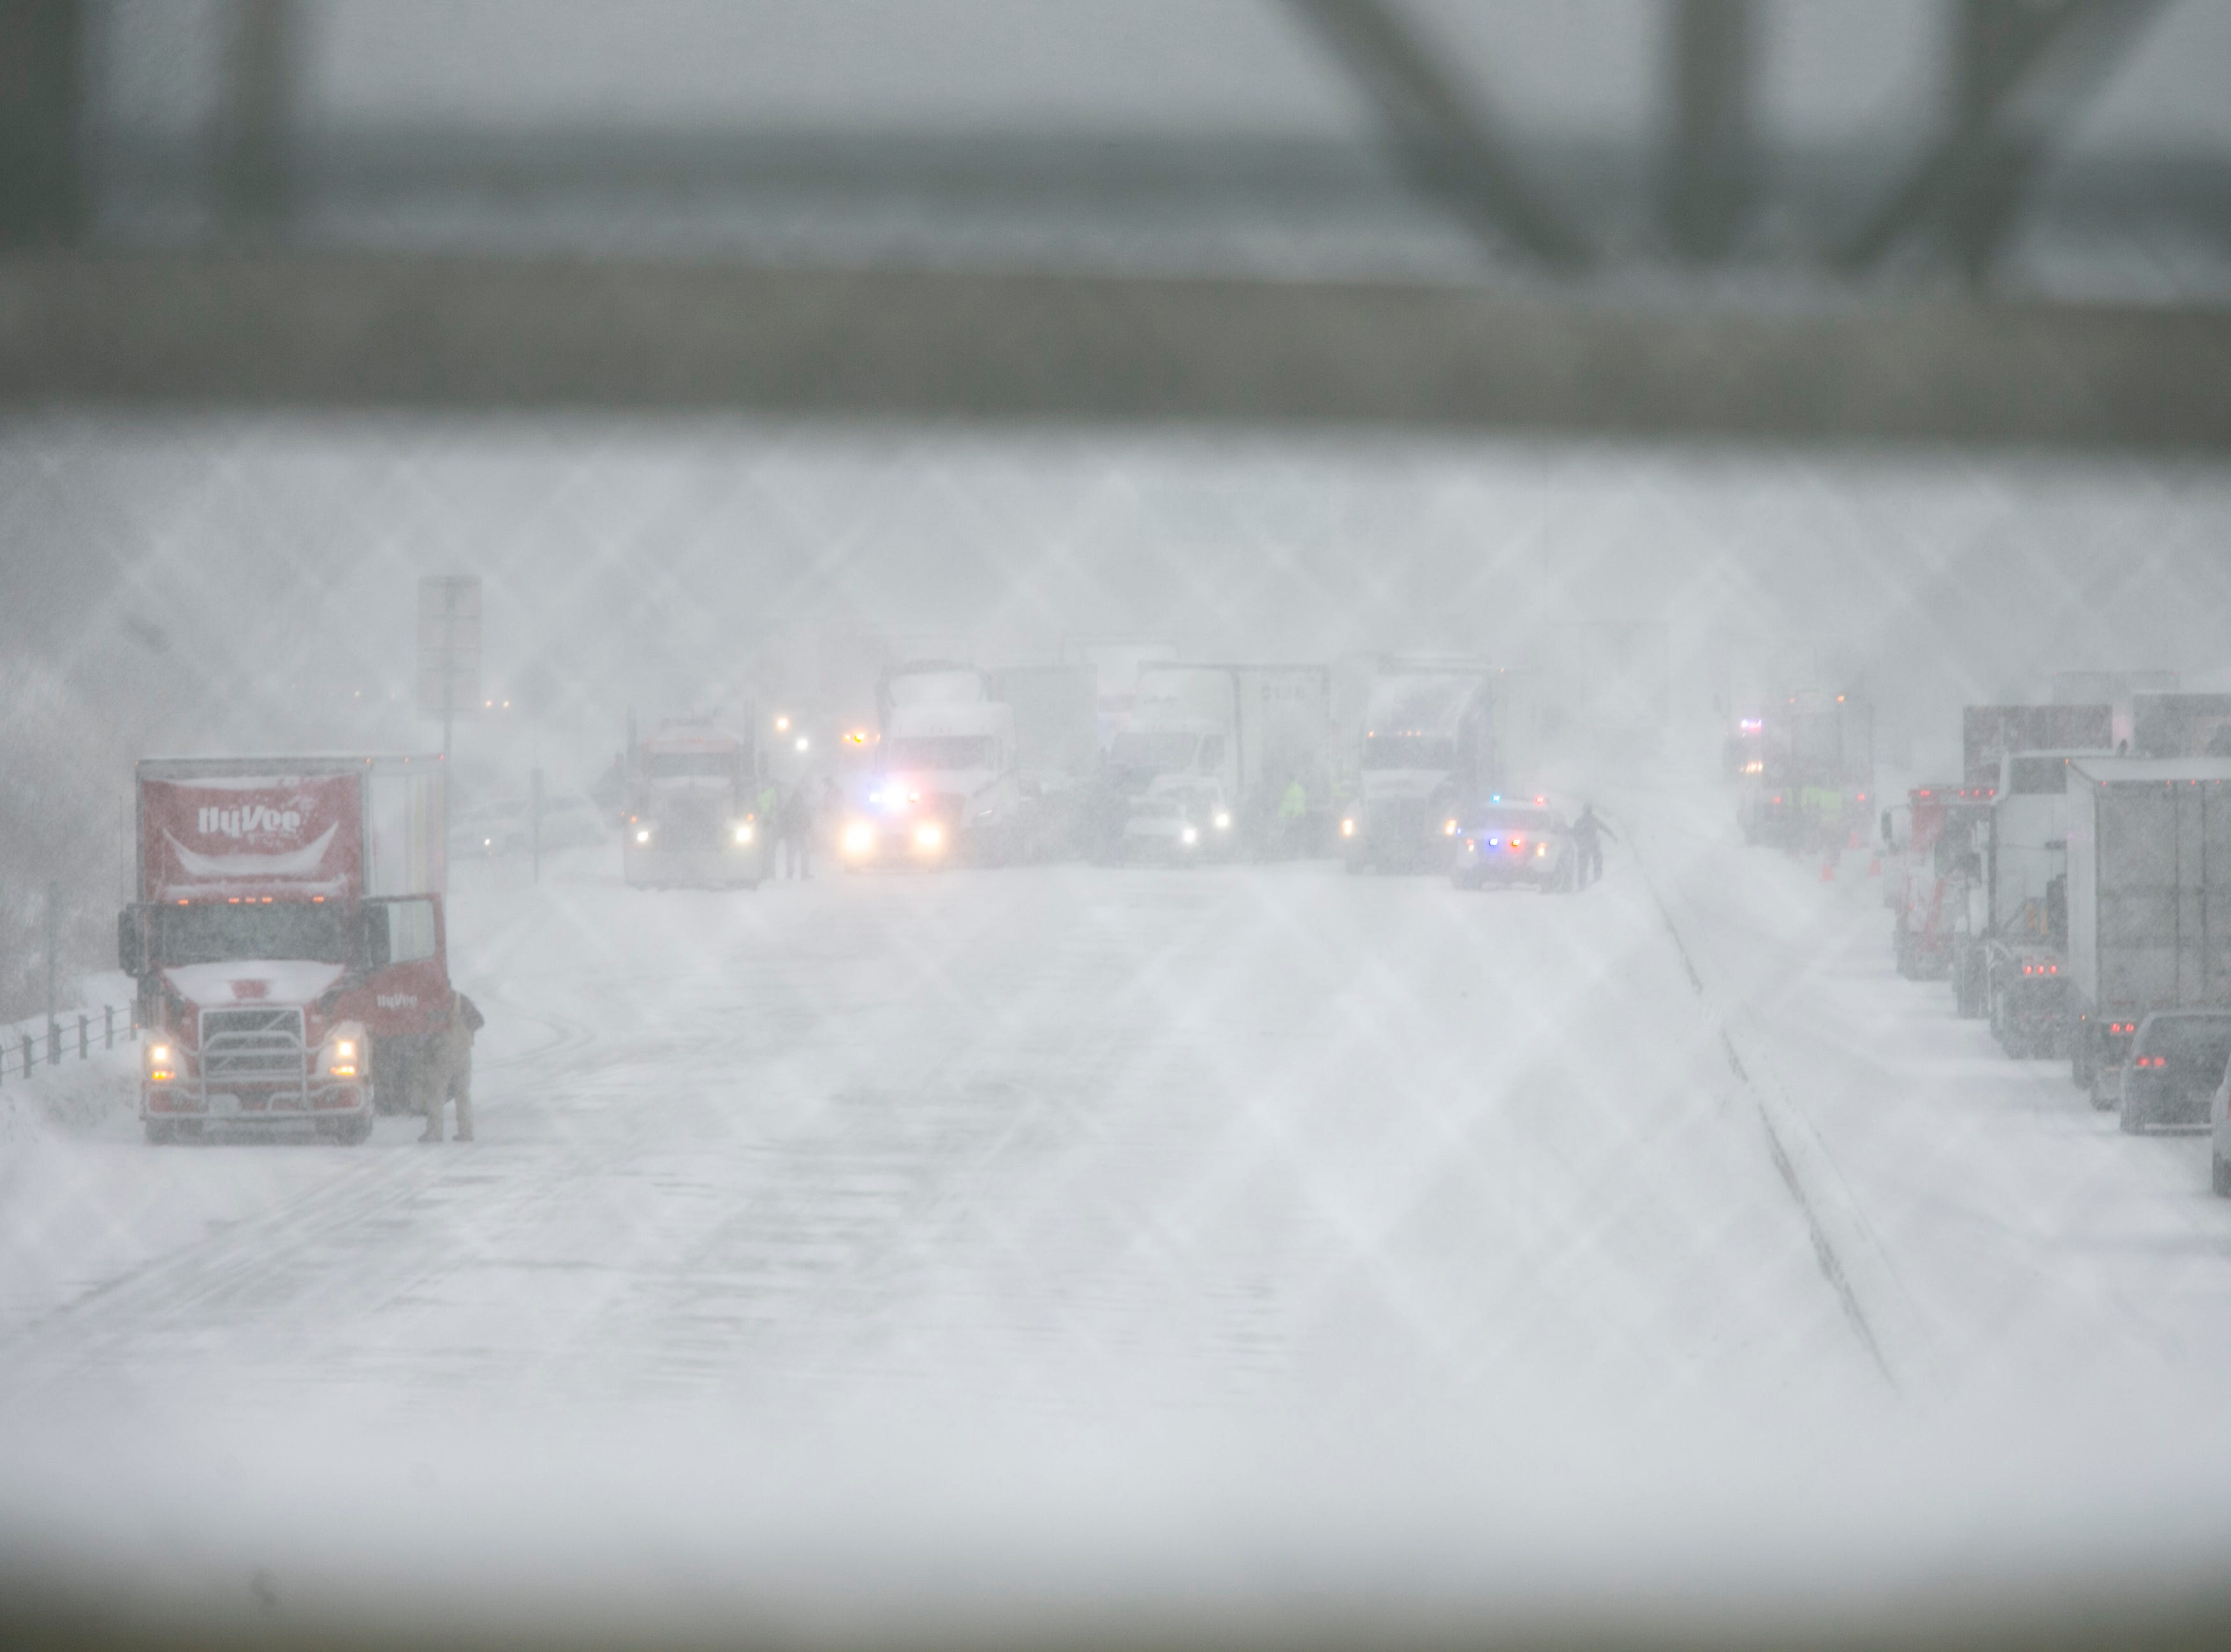 Traffic gets backed up in westbound lanes as snow falls on Thursday, Jan. 31, 2019, along Interstate 80 between exits 242 at 1st Avenue and exit 240 for IA 965 in Coralville, Iowa.